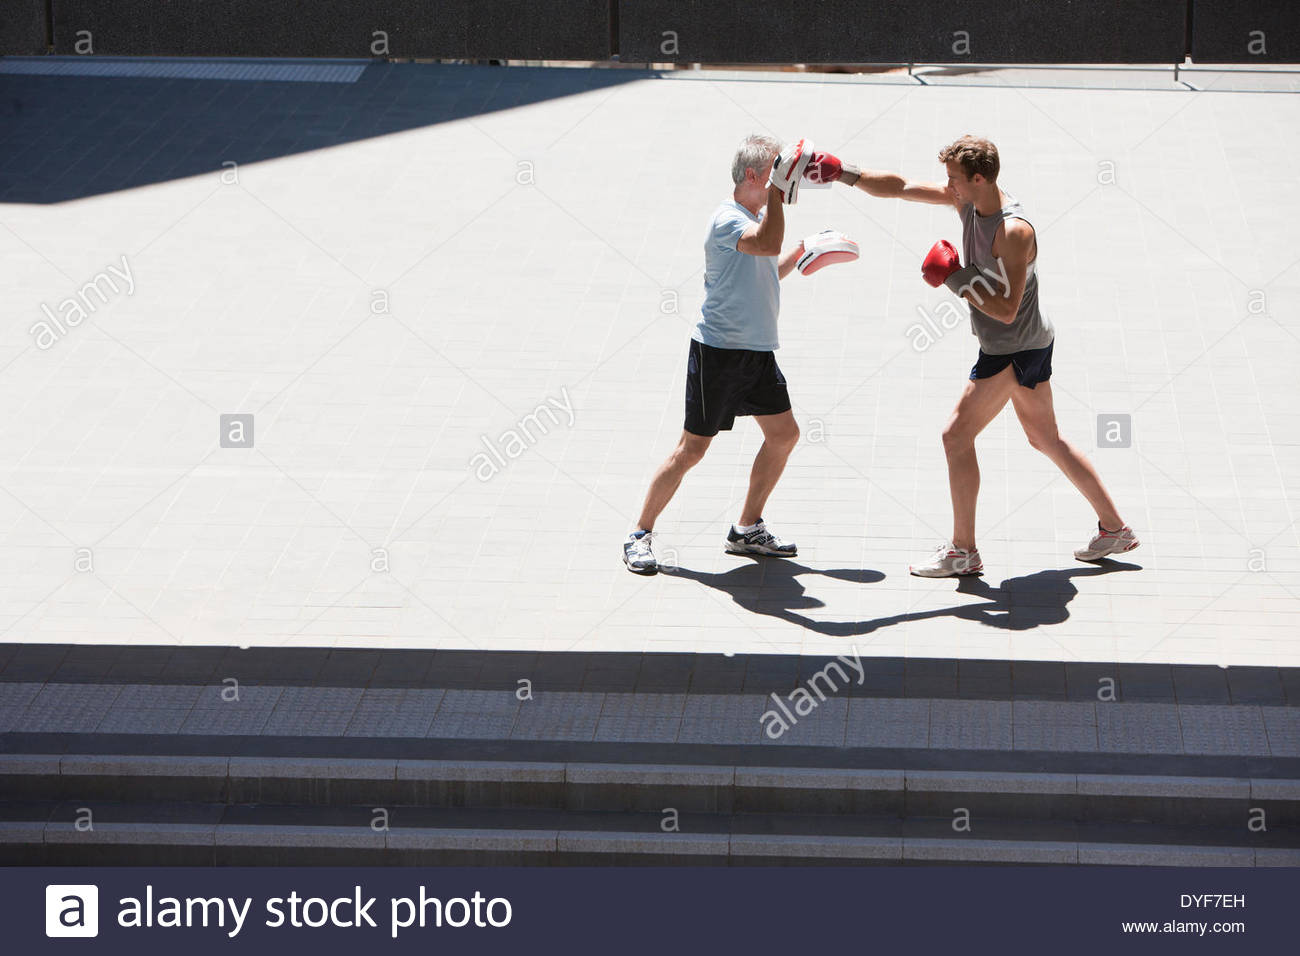 Boxer training with coach outdoors - Stock Image